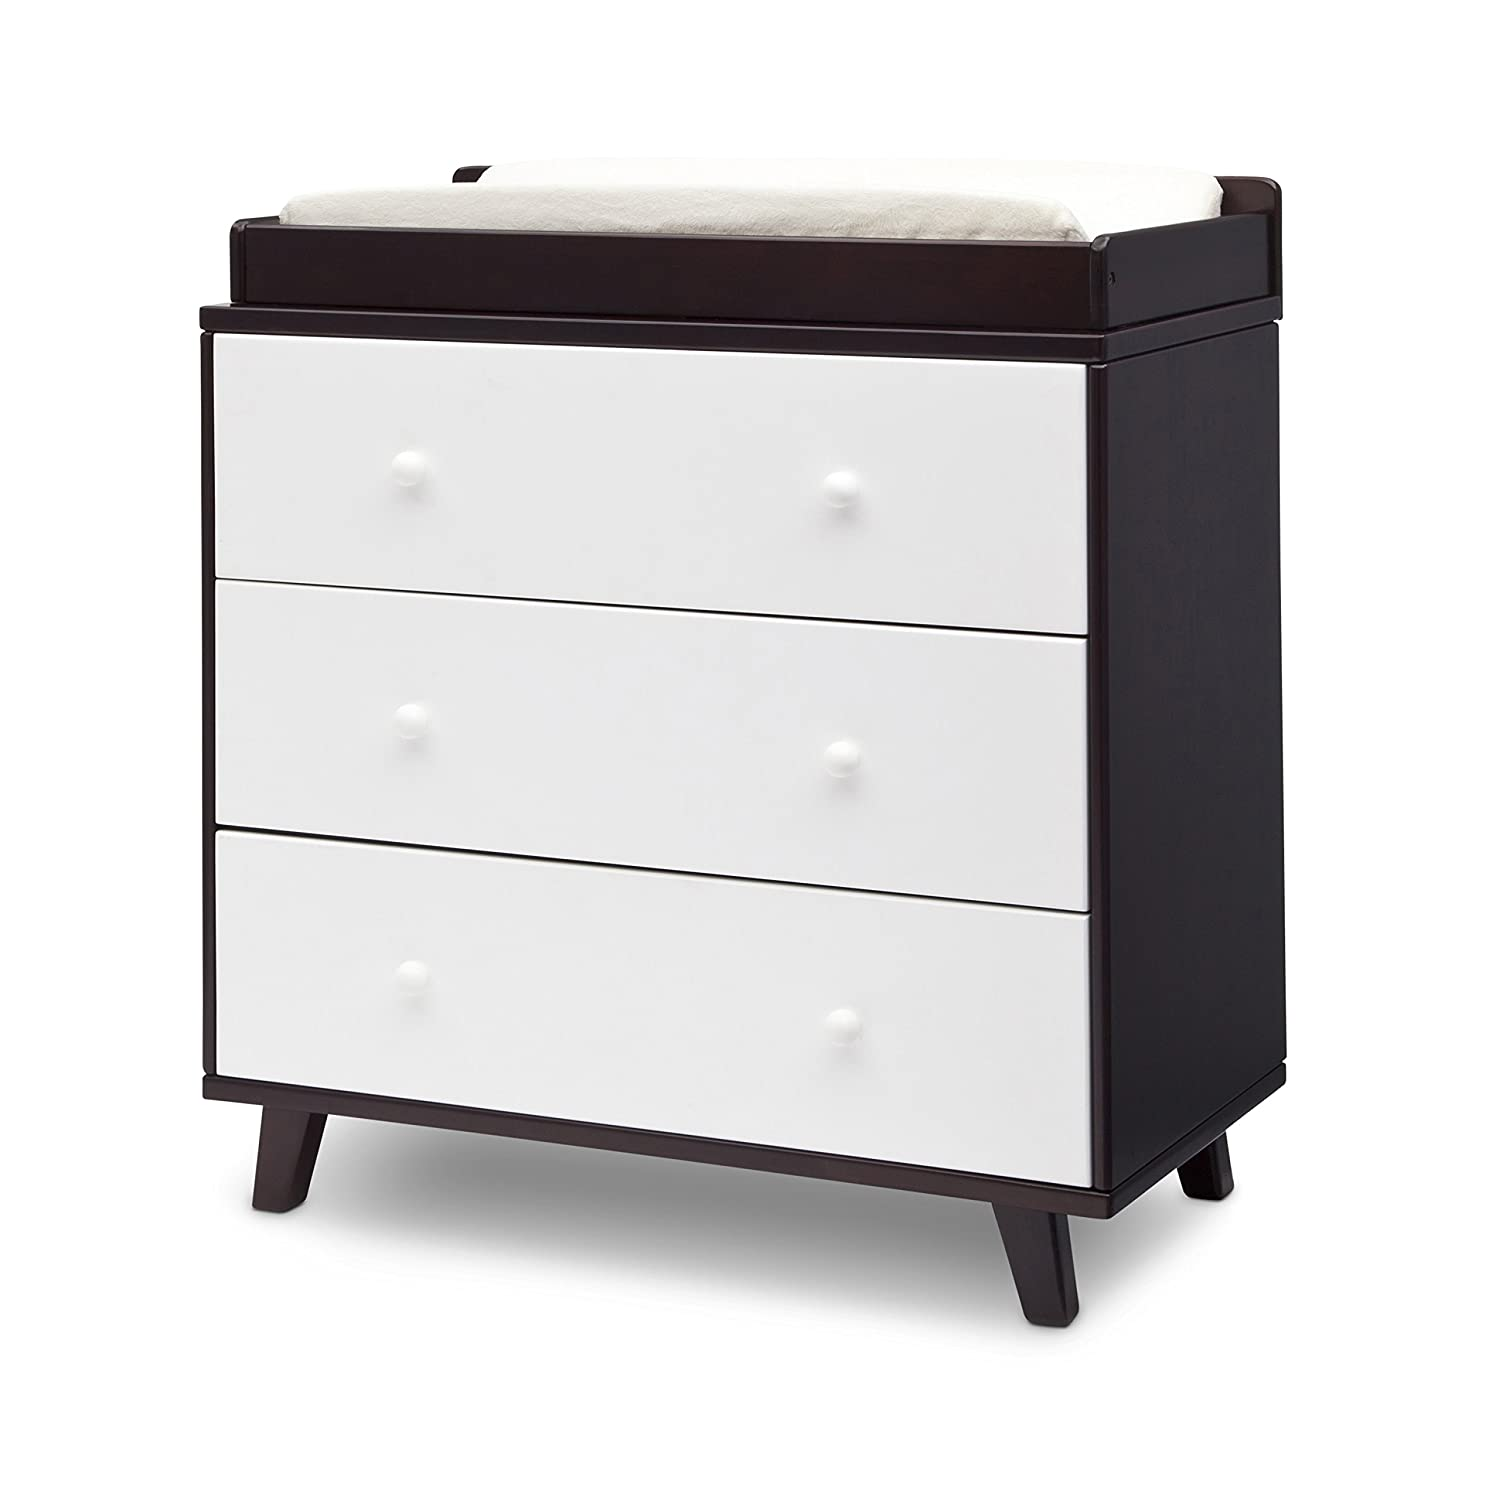 wagon drawers merlin drawer at dressers with changing sparrow product dresser black base oeuf slate